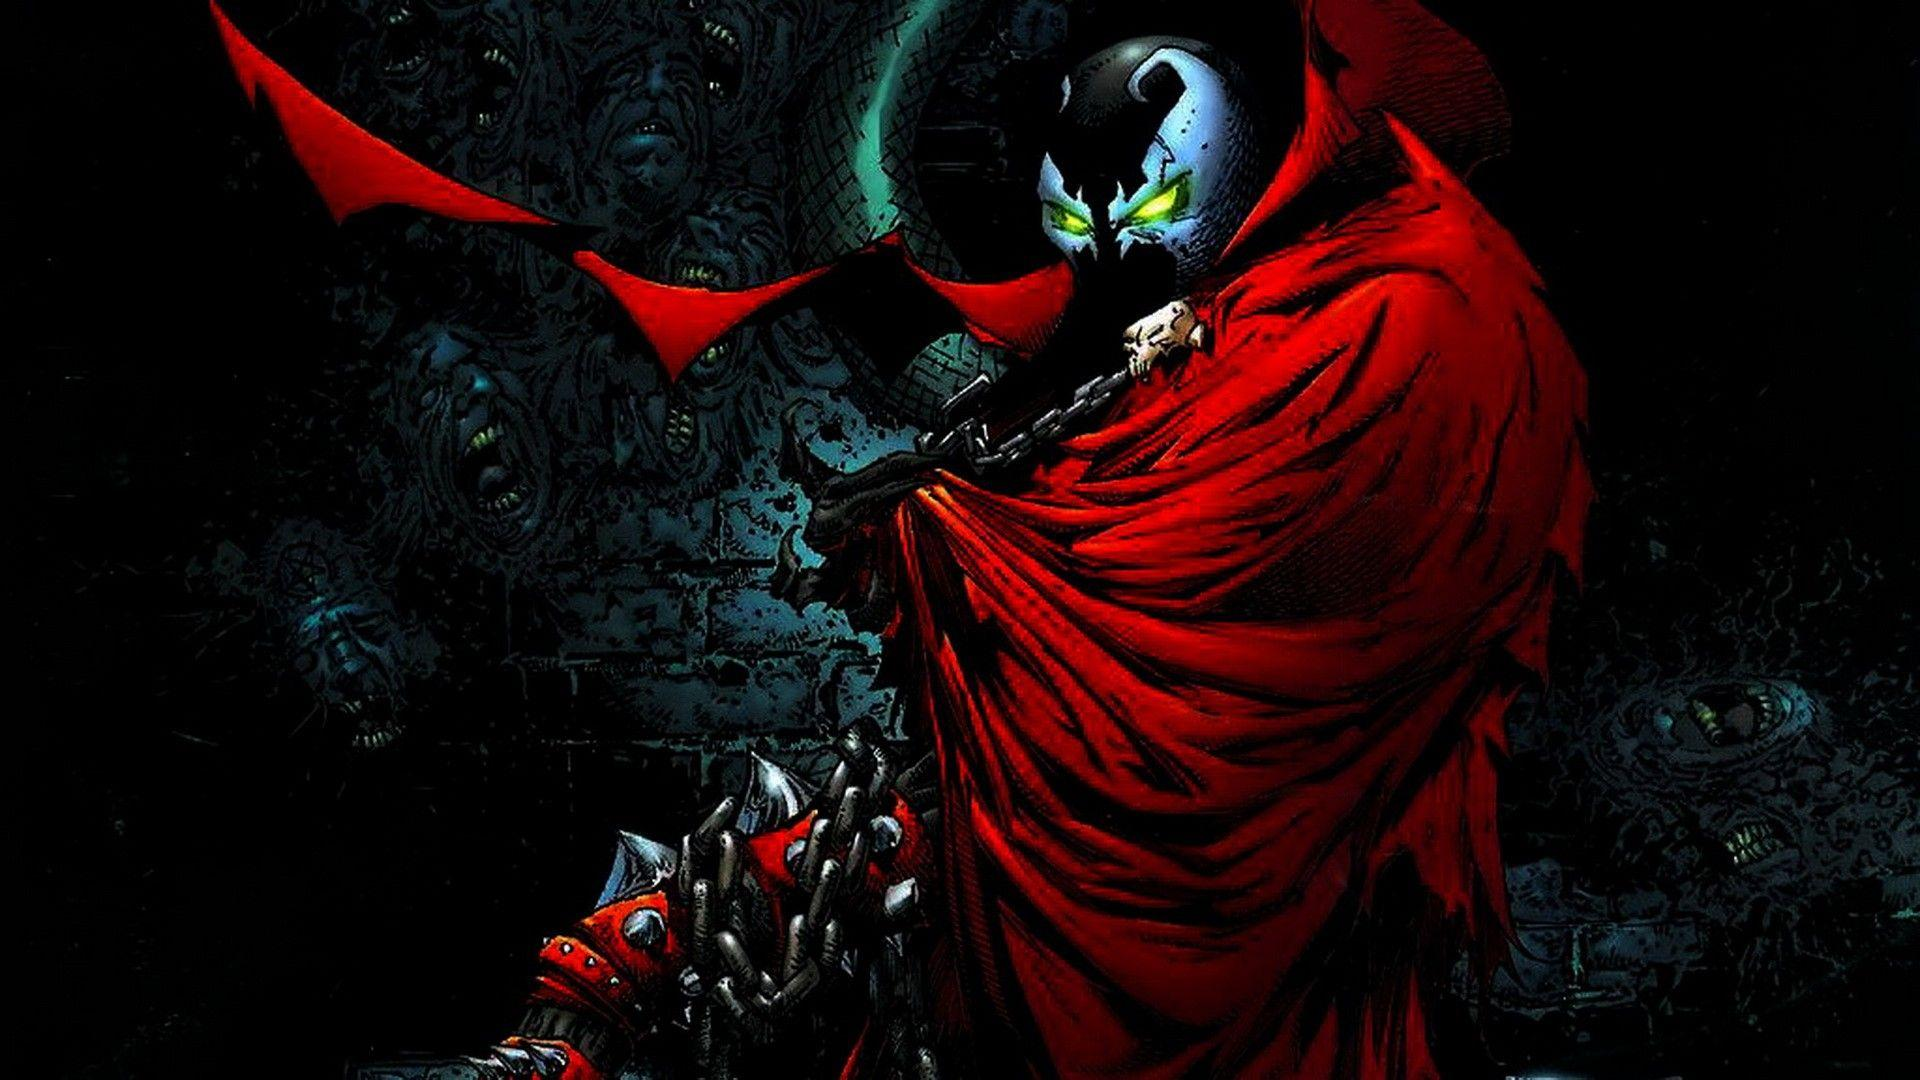 Spawn Hd Wallpapers 1080p Wallpaper Cave